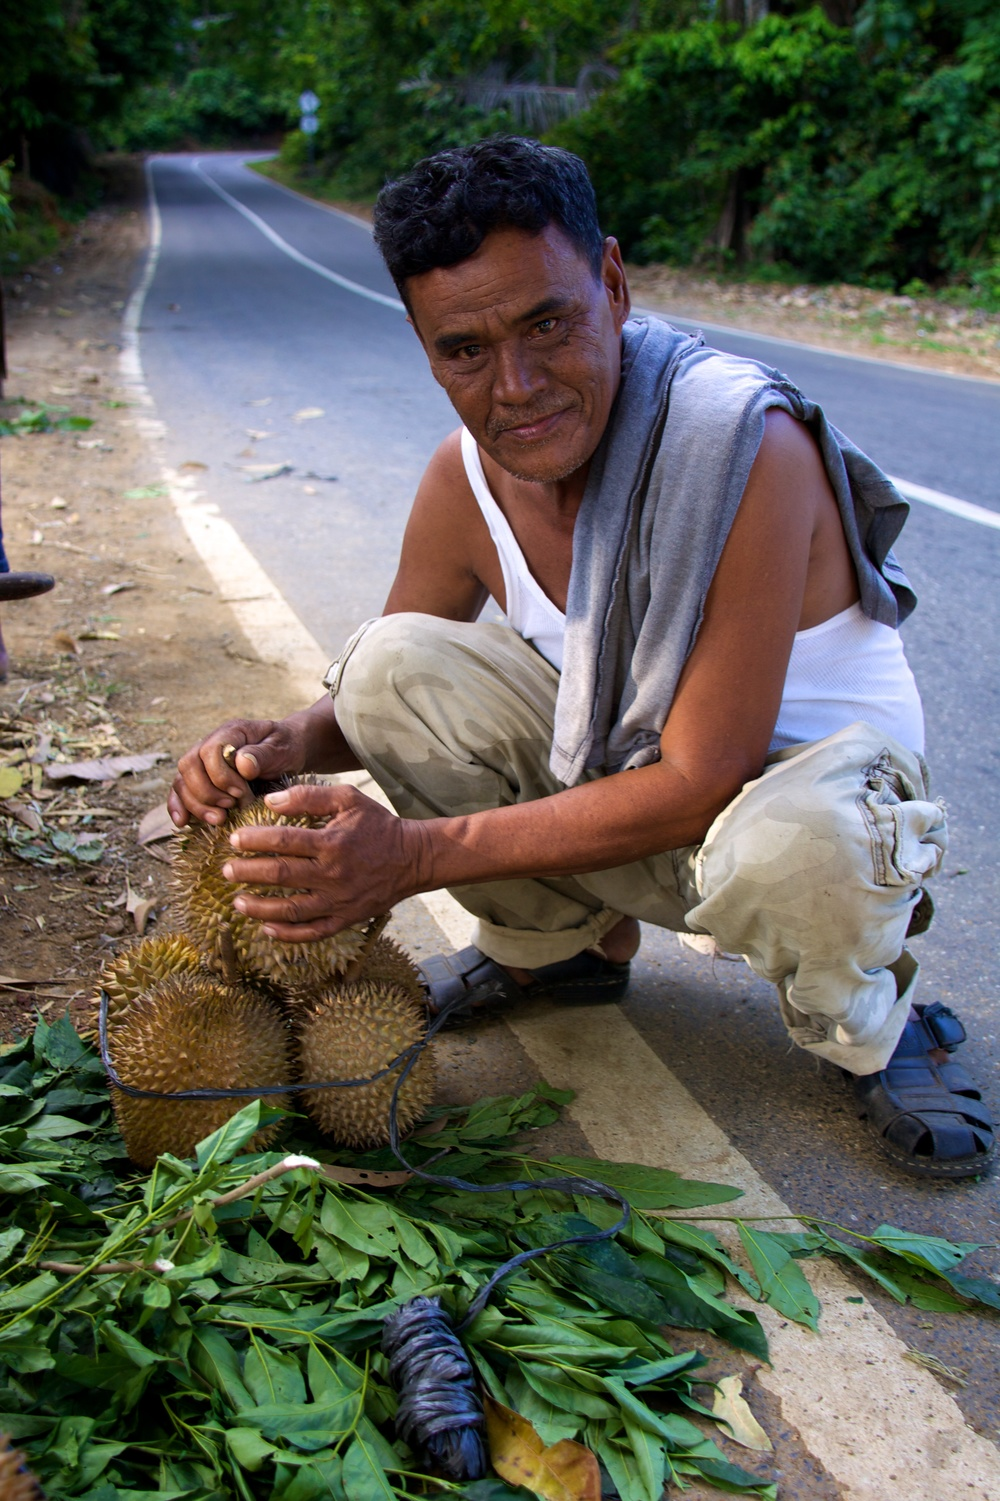 A man sells bundles of strong-smelling durian fruit along the mountainous stretch of road in Aceh, Indonesia. He sells a bundle (about five fruits) for 75,000 rupiah or approximately 8 US dollars. He says his lifestyle hasn't been changed at all by the USAID road.